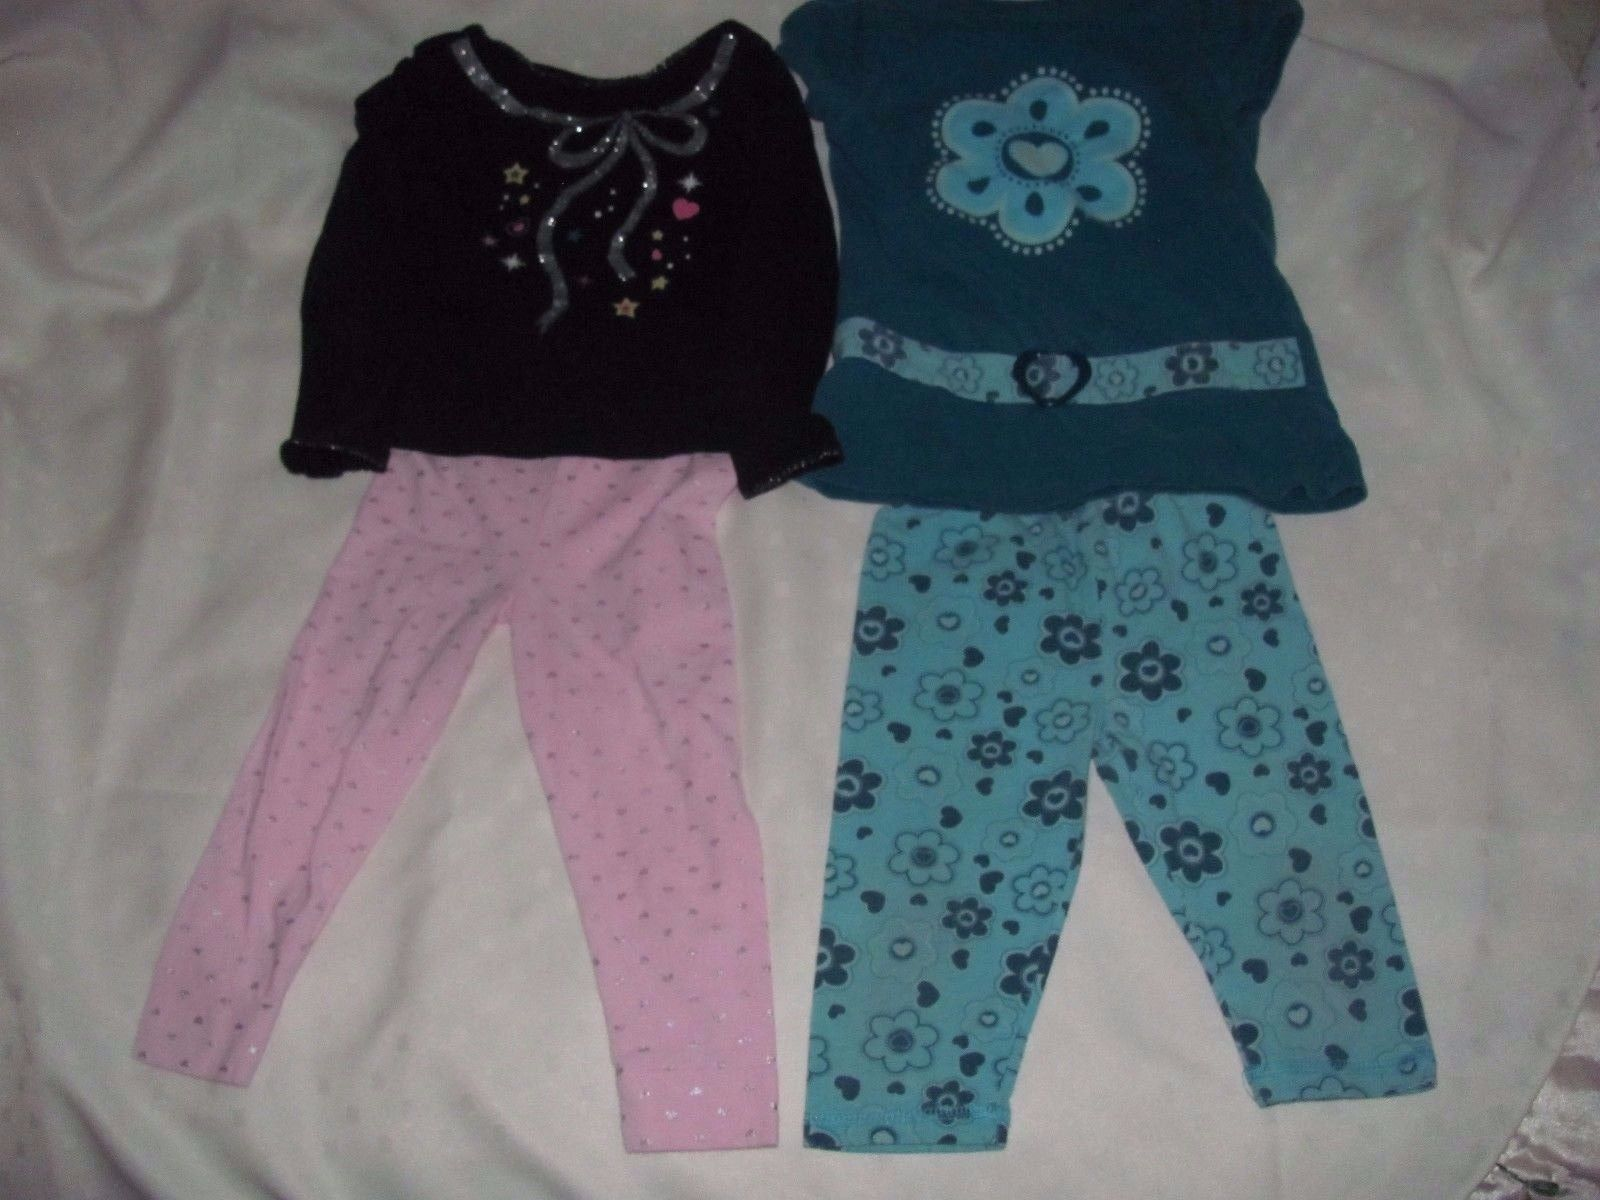 24 MOS. GIRLS OUTFITS-TOP LONG PANTS-GARANIMALS-FADED GLORY-PINK-BLACK-GREEN